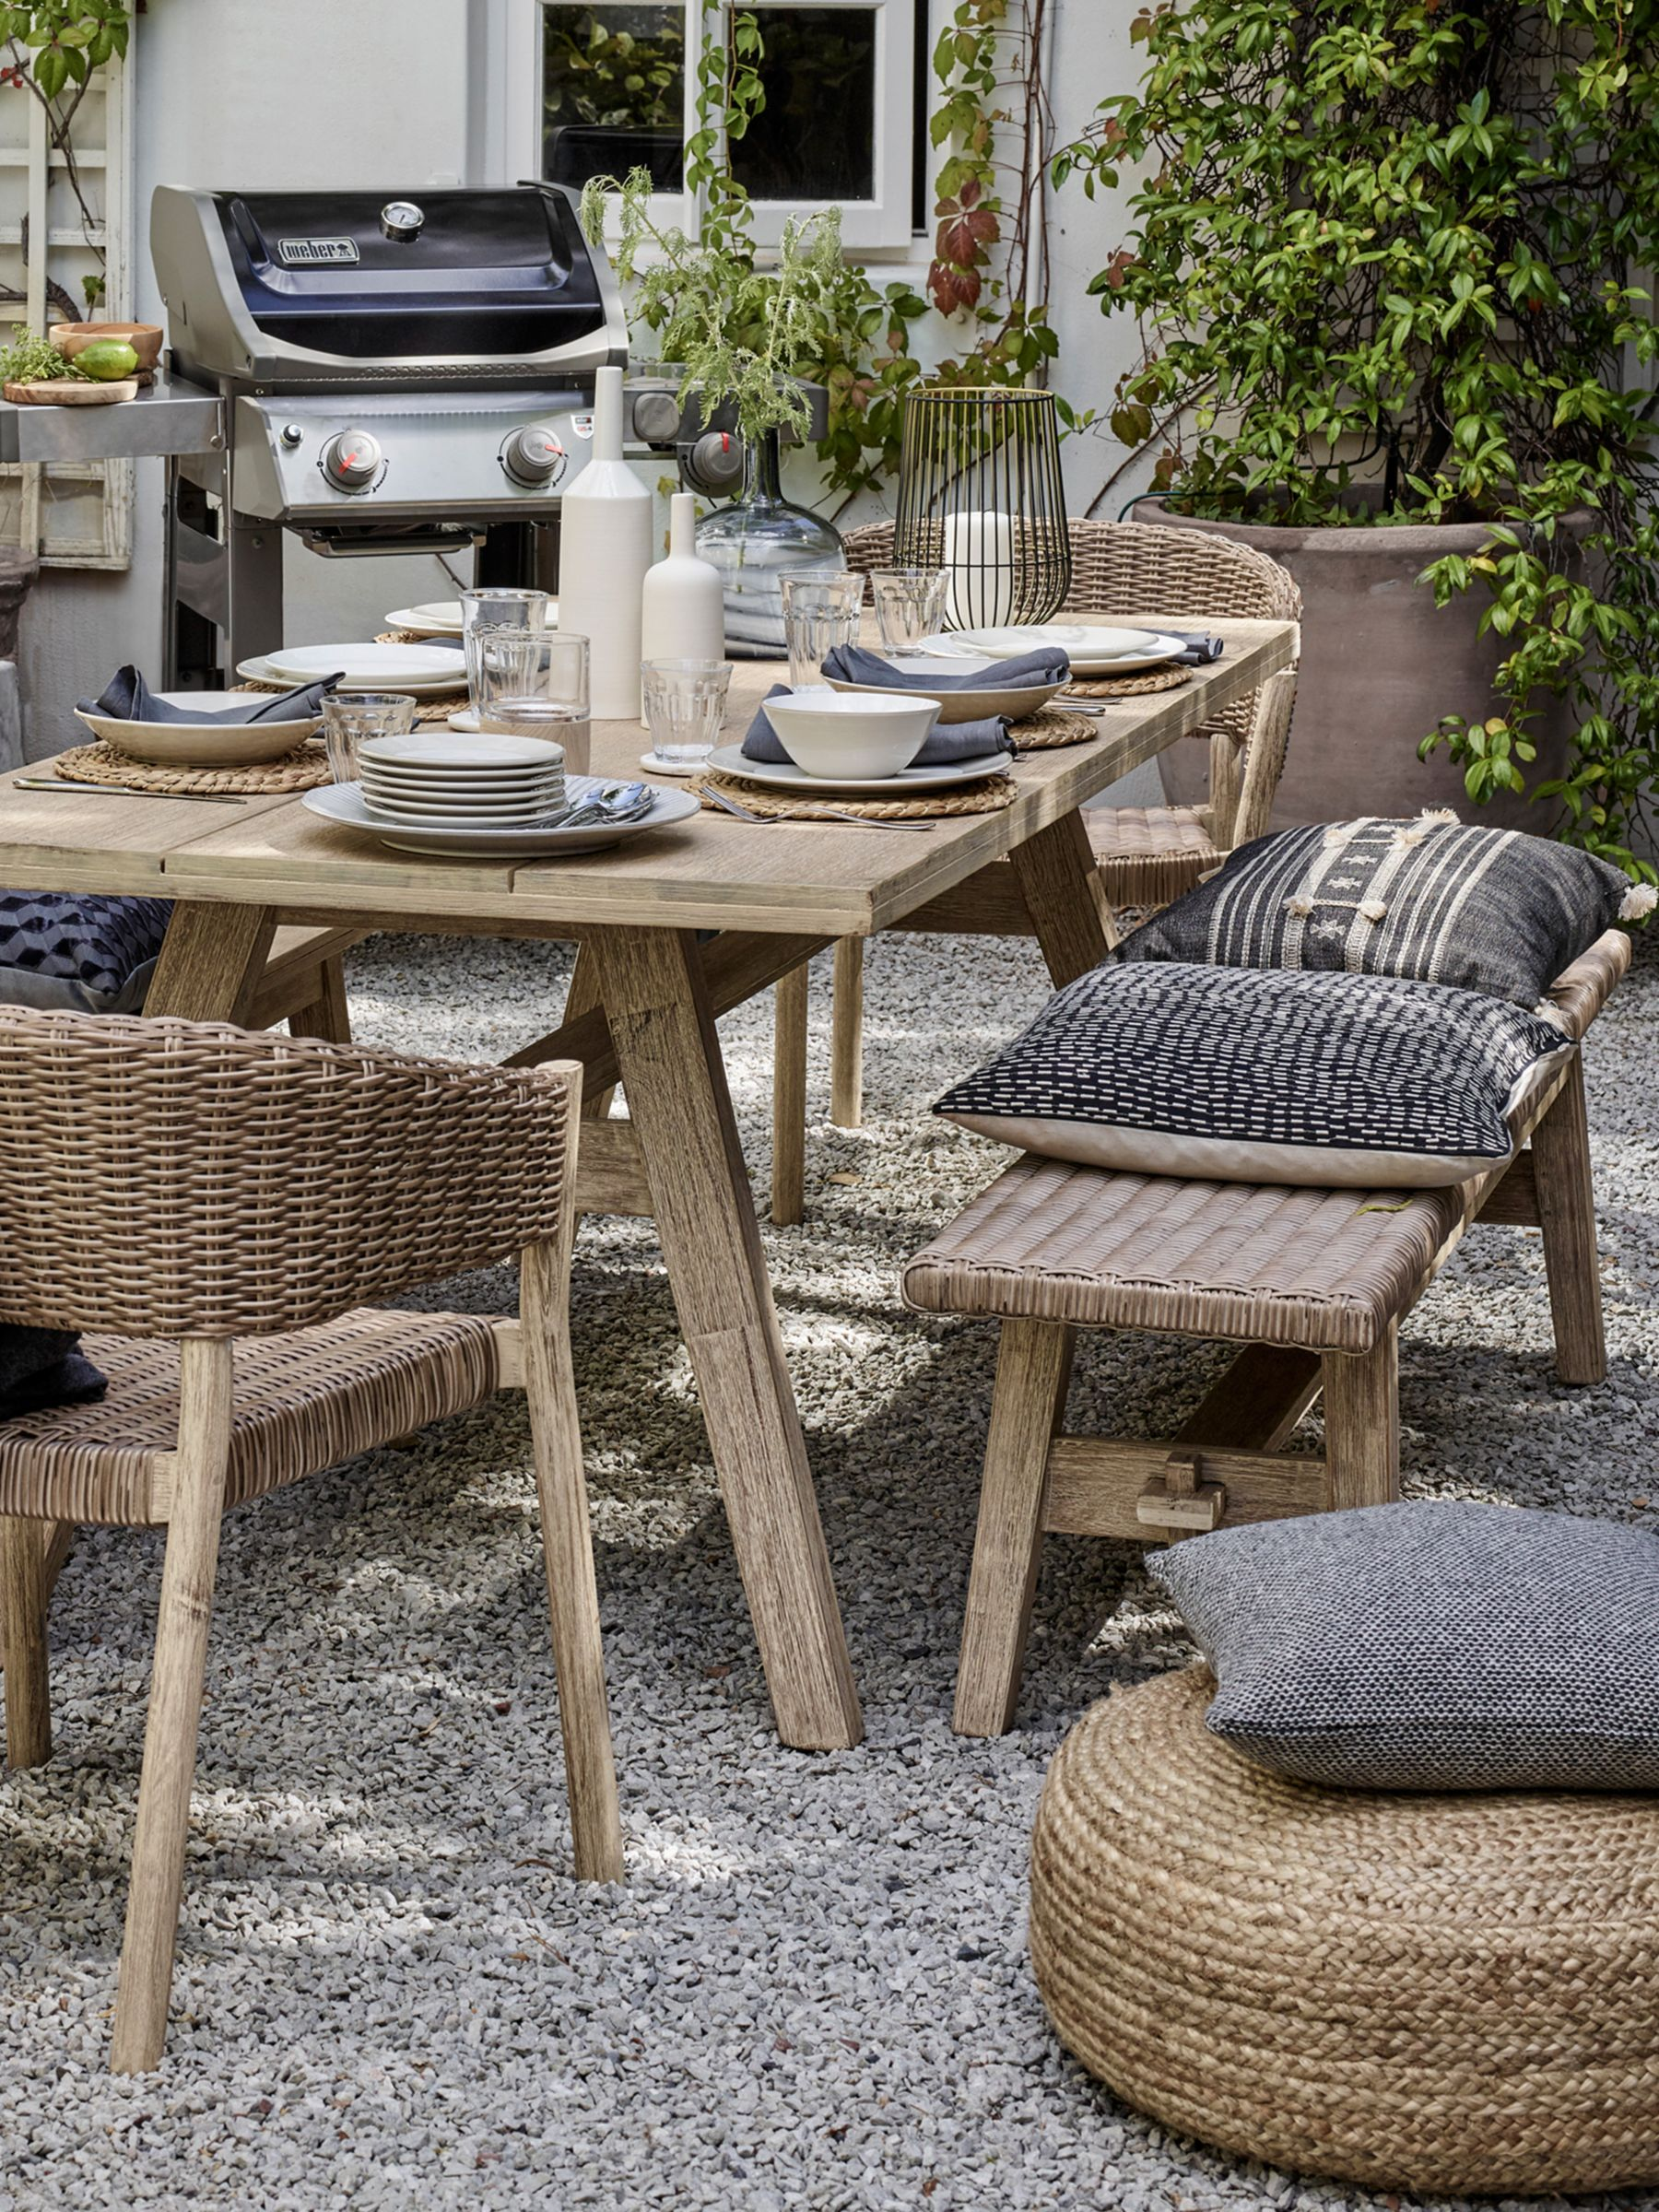 Admirable Garden Furniture Garden Tables Chairs Rattan John Interior Design Ideas Gentotryabchikinfo